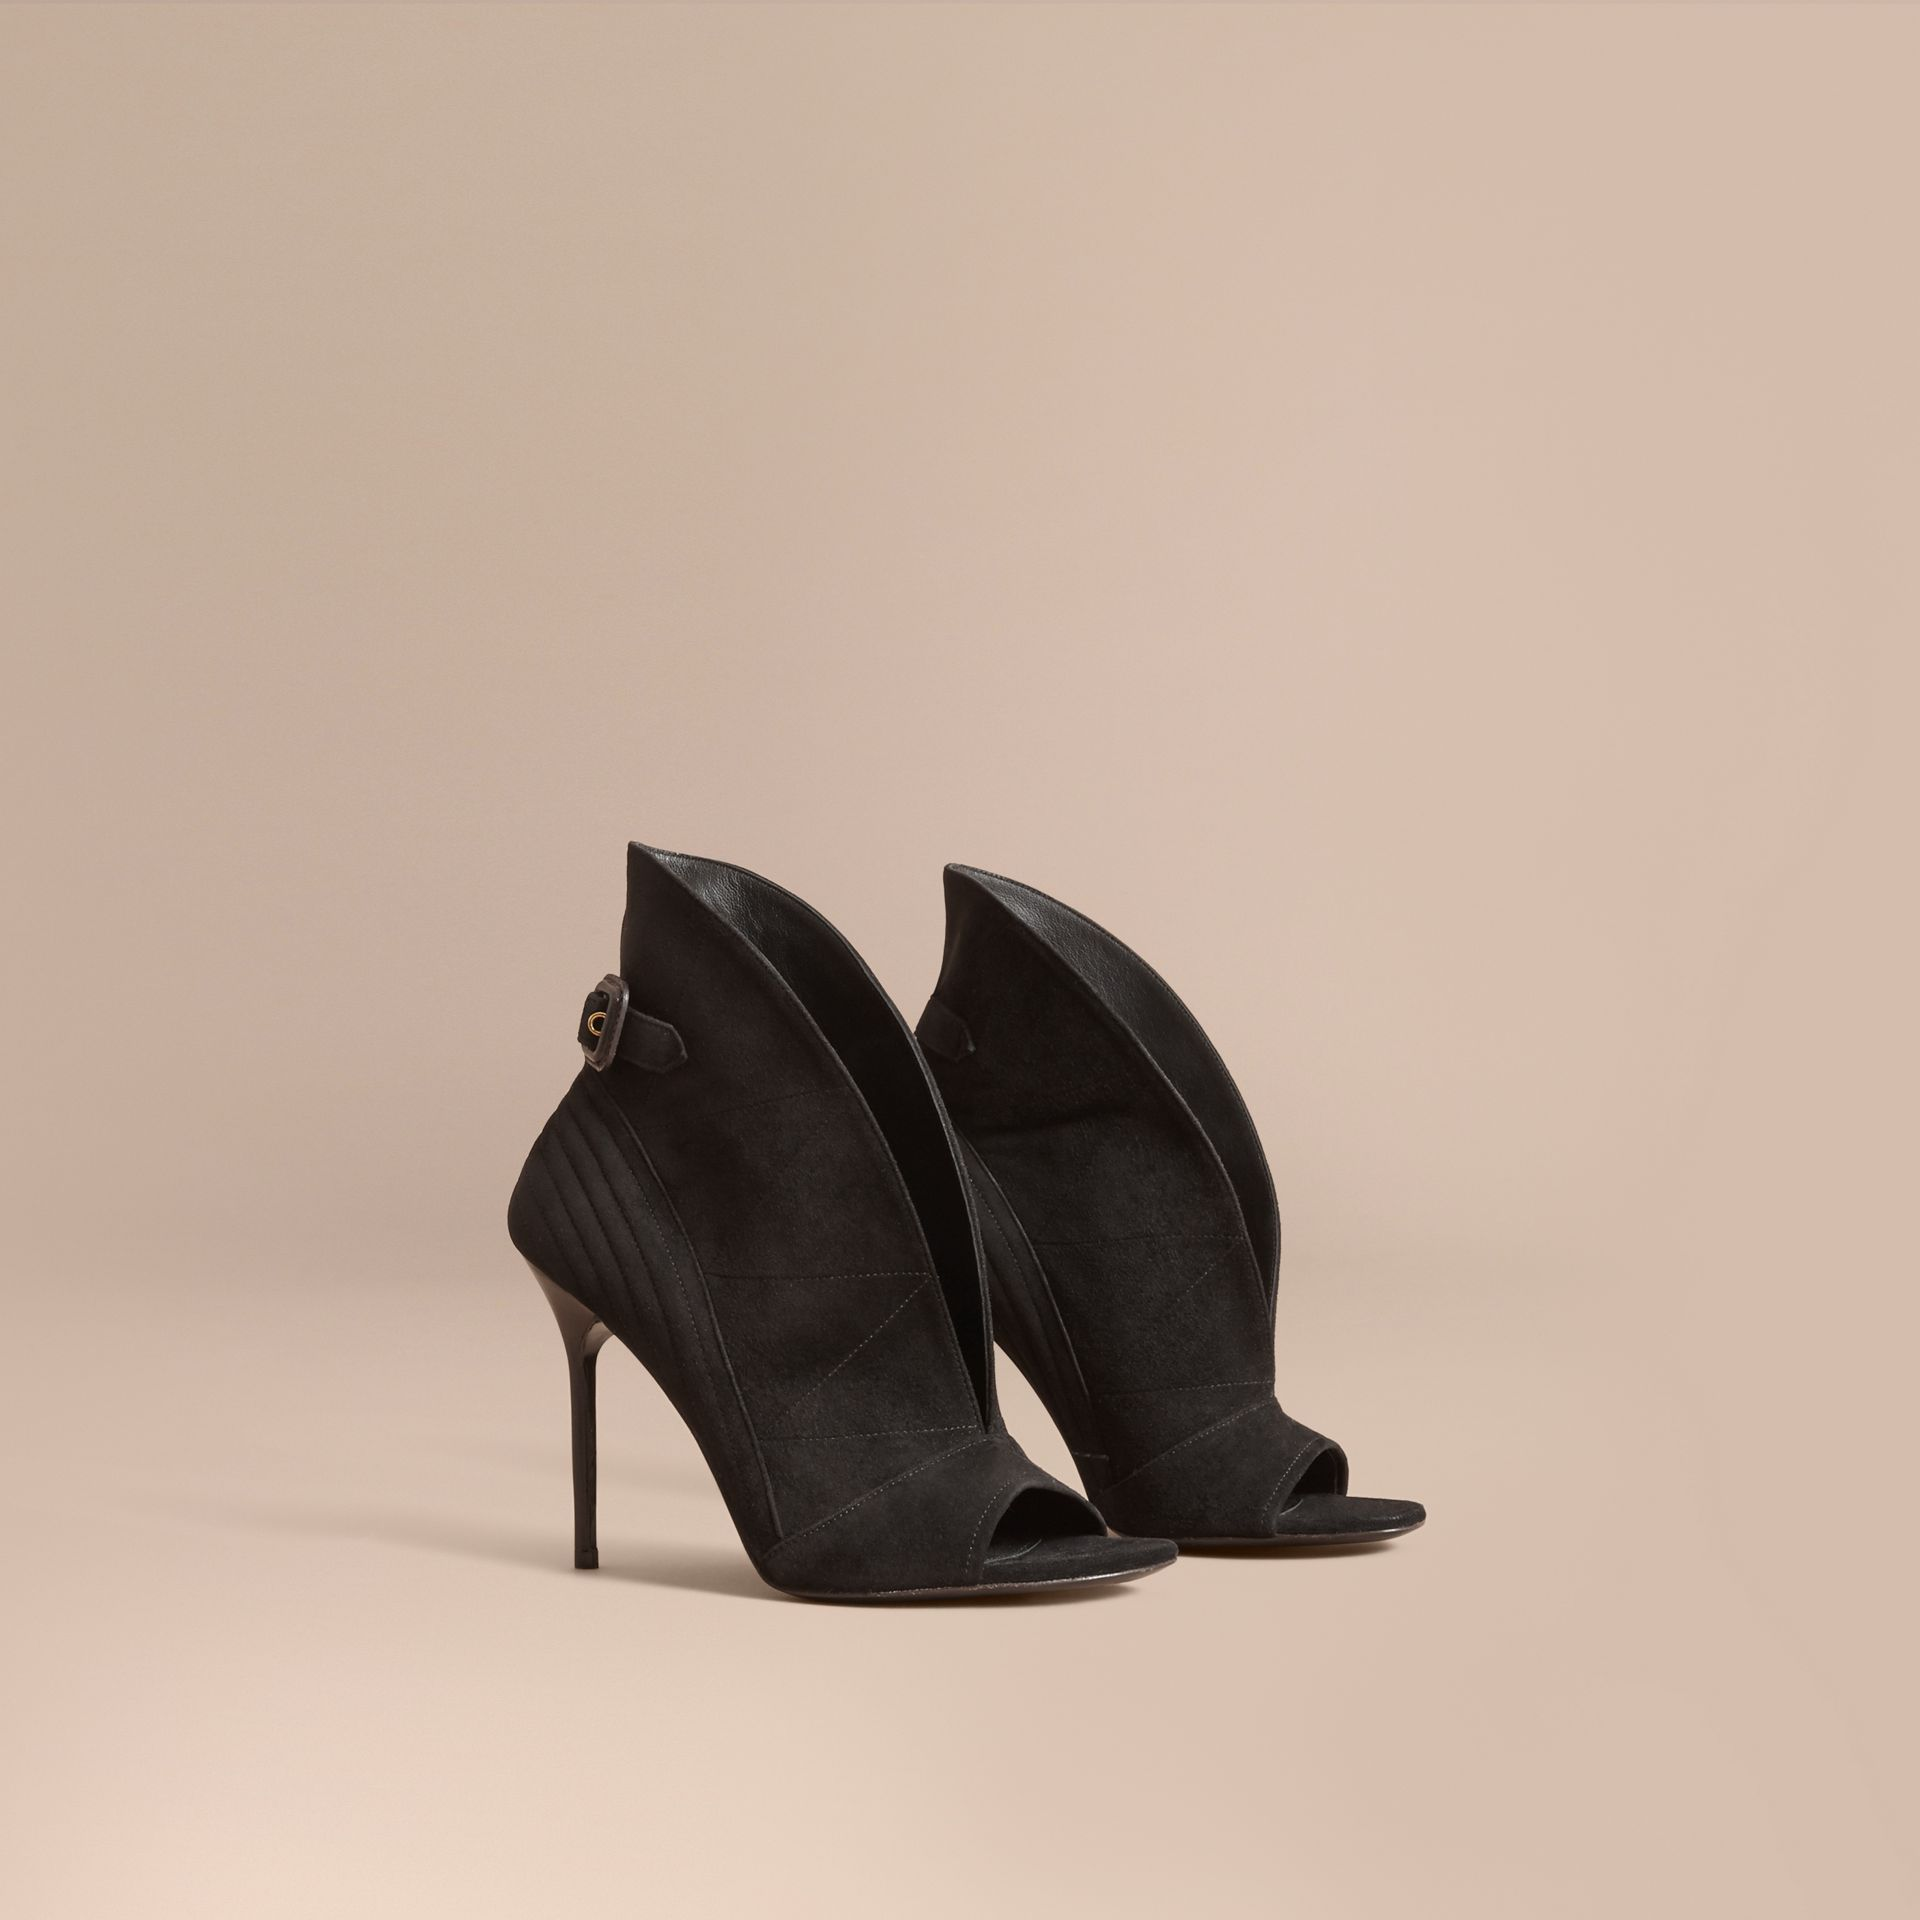 Buckle Detail Suede Peep-toe Ankle Boots in Black - Women | Burberry Singapore - gallery image 1